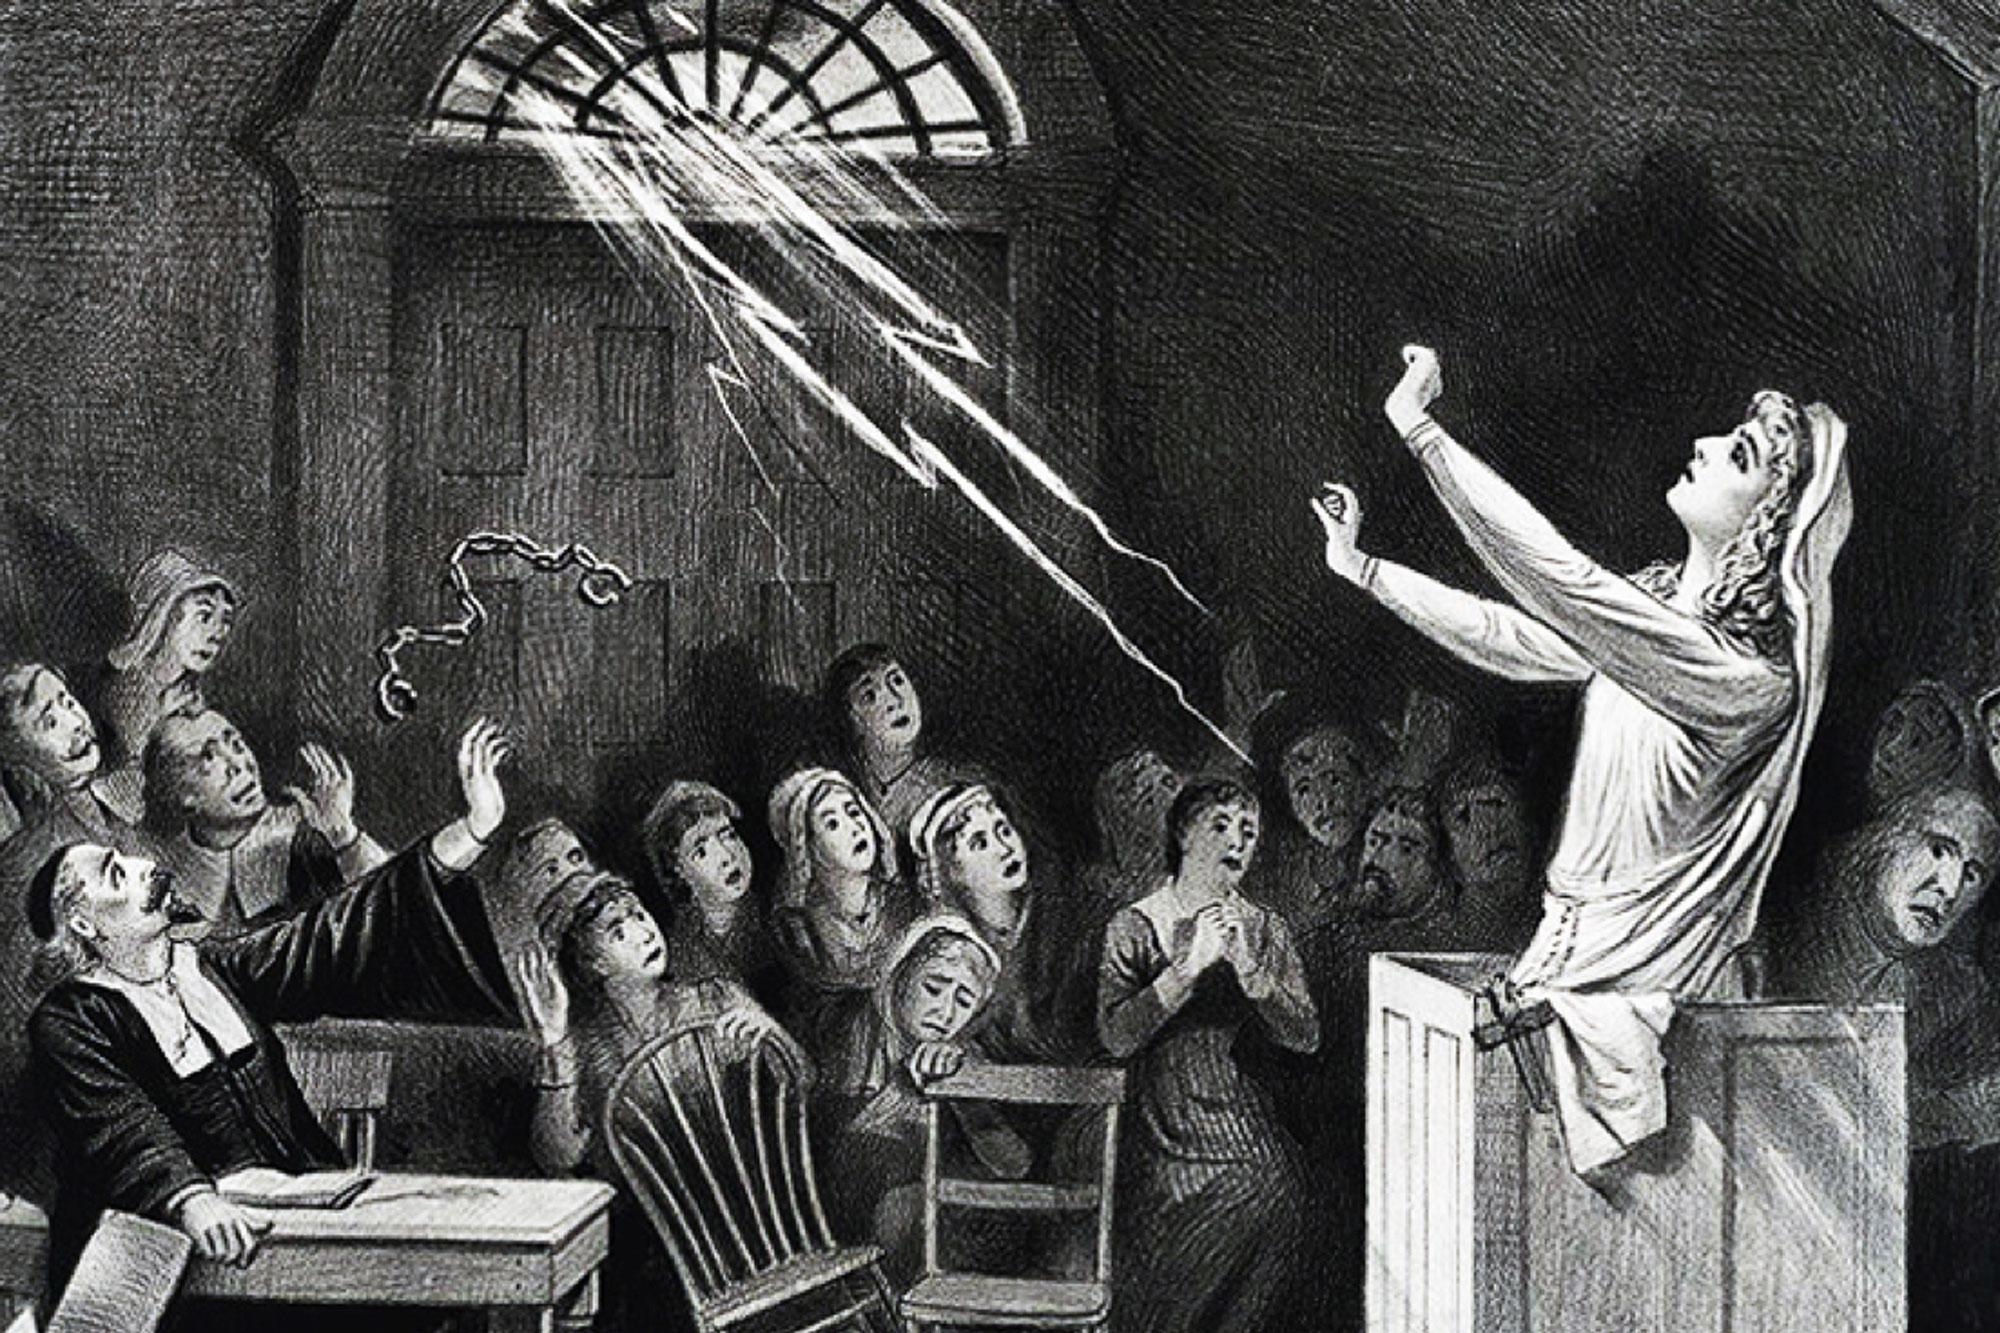 A study that included UVA religious studies professor Benjamin Ray and Chris Gist, a geographical information systems specialist in the Alderman Library Scholars' Lab, identified the execution site of alleged Salem witches.